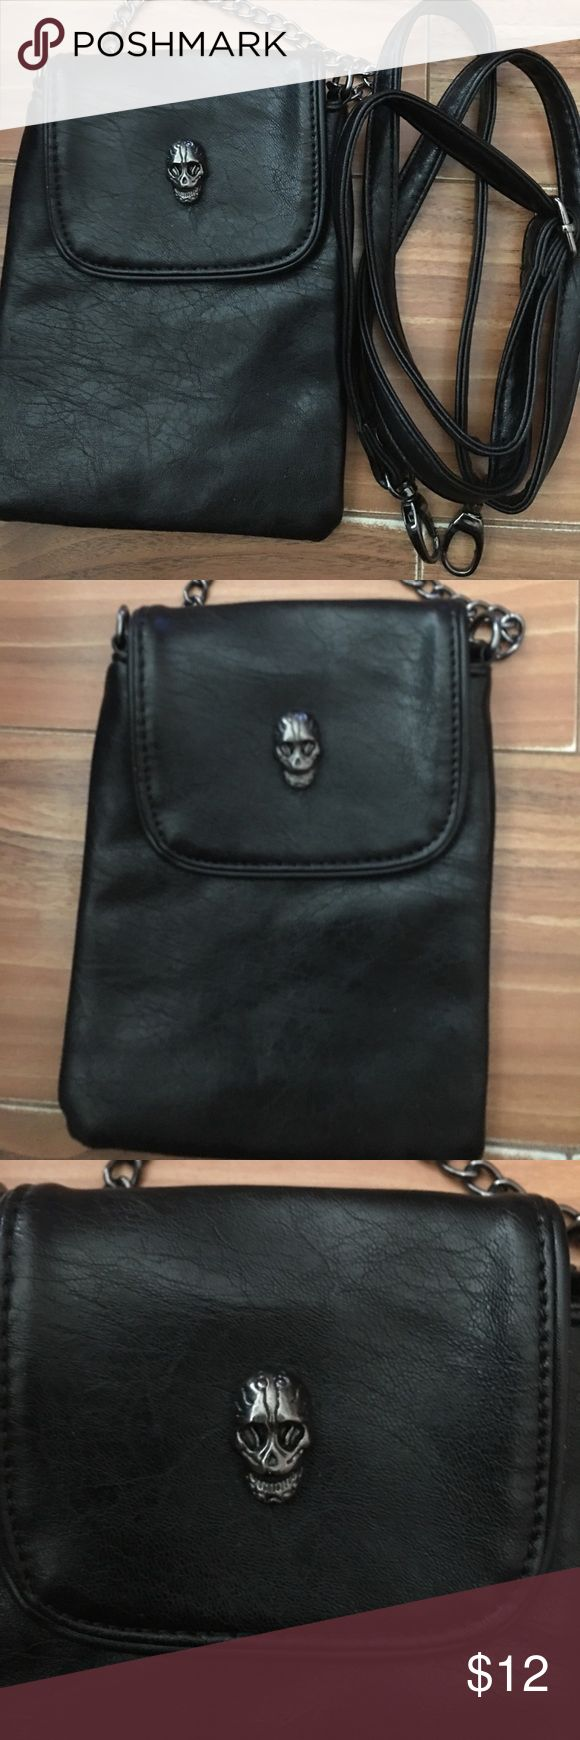 """NEW BLACK 3 IN 1 SKULL CROSSOVER BAG BRAND NEW 3 IN. 1 BLACK HAND WAIST CROSSOVER SKULL BAG APPROX 7"""" by 5"""" by 3 NEW WITH TAG FAUX LEATHER Bags Crossbody Bags"""